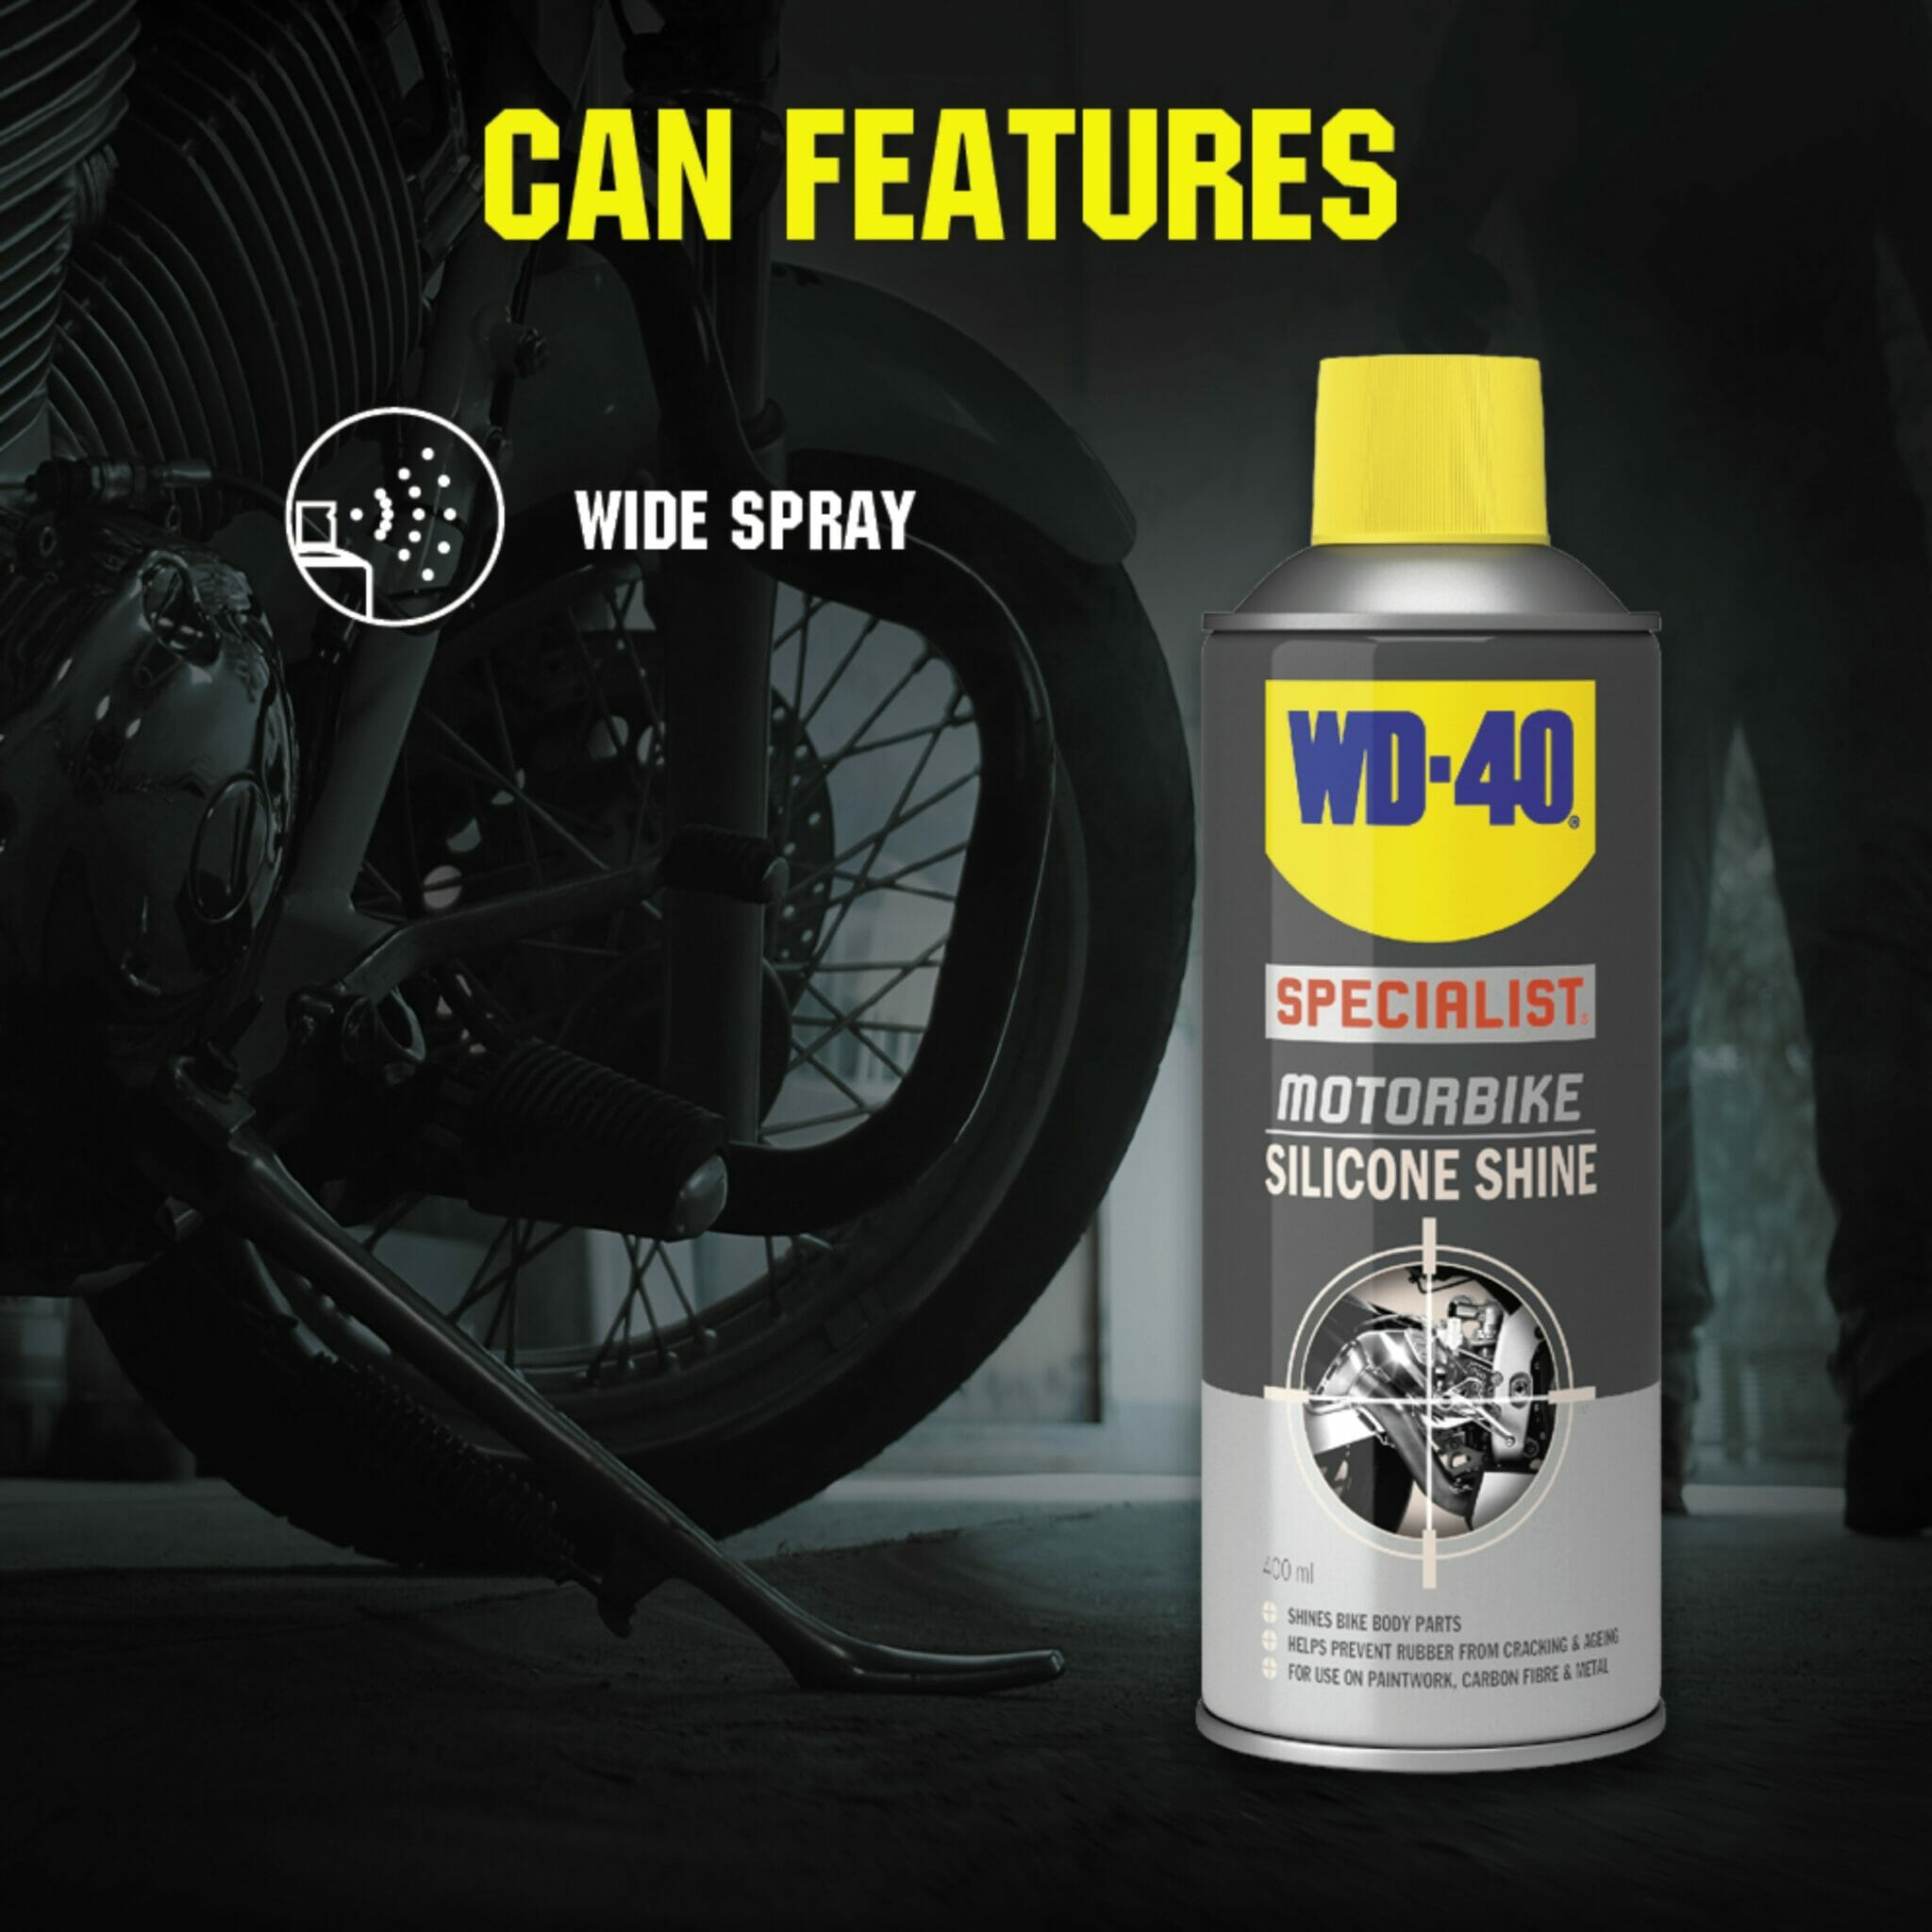 uk wd40 specialist motorbike silicone shine 400ml can features lifestyle background